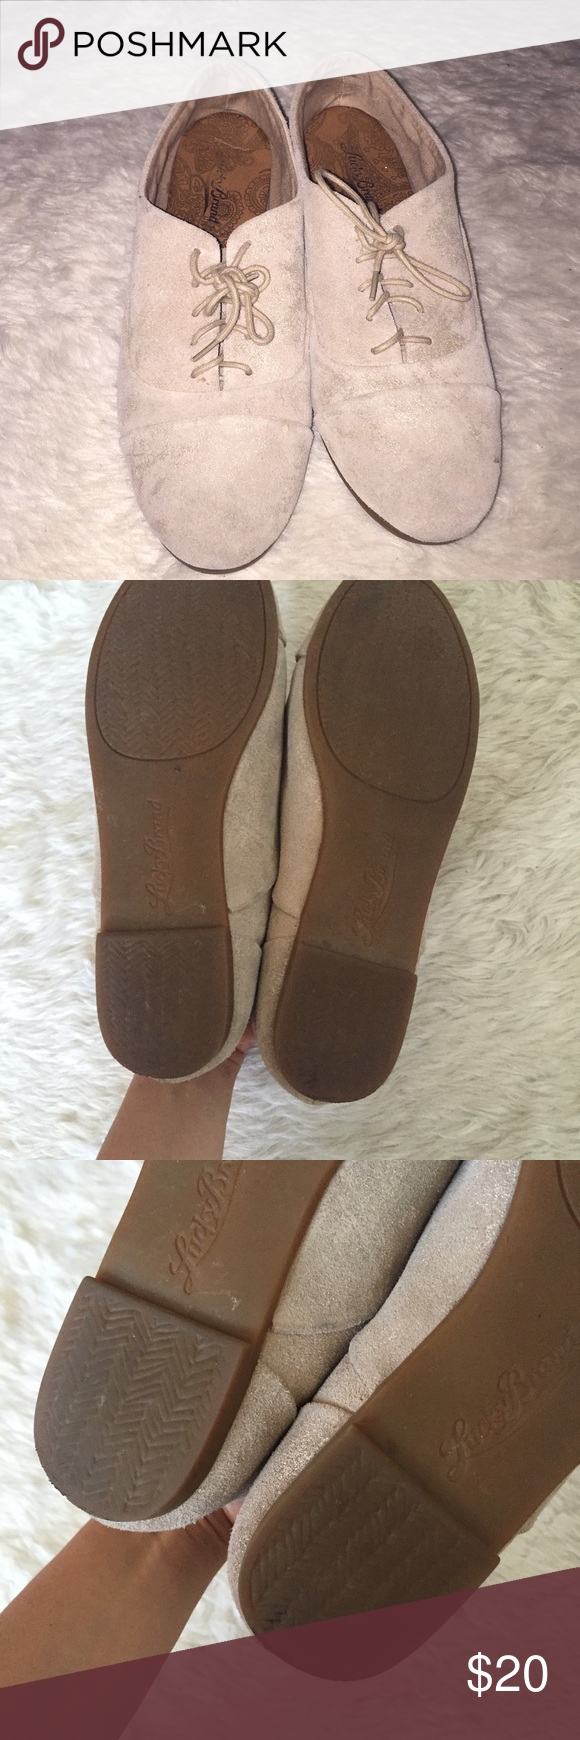 Lucky brand suede shoes Cool toned cream suede shoes, like new , hardly worn, very comfortable and classic. Lucky Brand Shoes